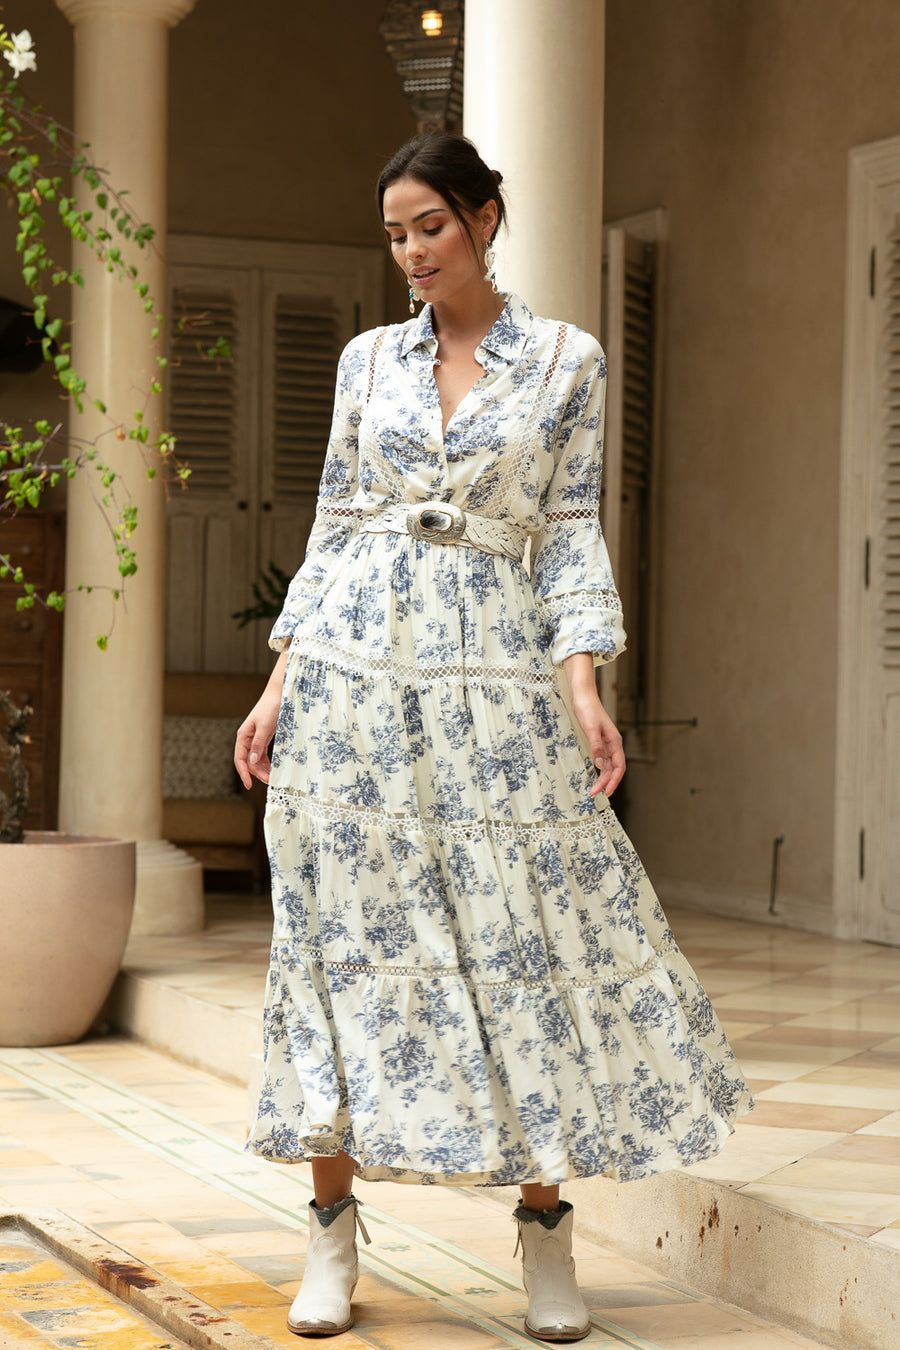 Miss June Blue Floral Maxi